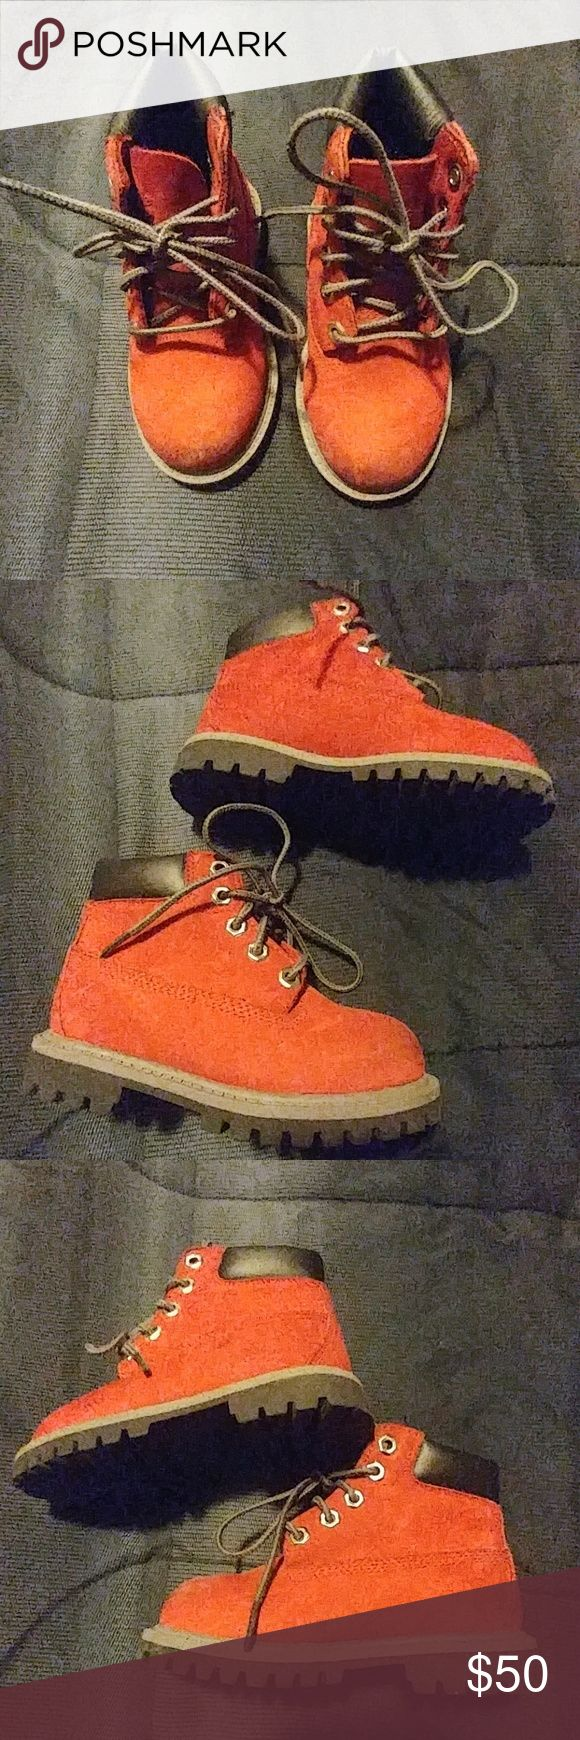 Toddler Boy's Timberland Boots Dark red/burgundy timberlands. Bought for my grandson and he may have worn them once. He also have the black ones (but they need to be cleaned). They is a scuff or discoloration on the front (last picture) but you really can't notice. Excellent condition. No box but will be shipped neatly. Ask any questions! Timberland Shoes Boots